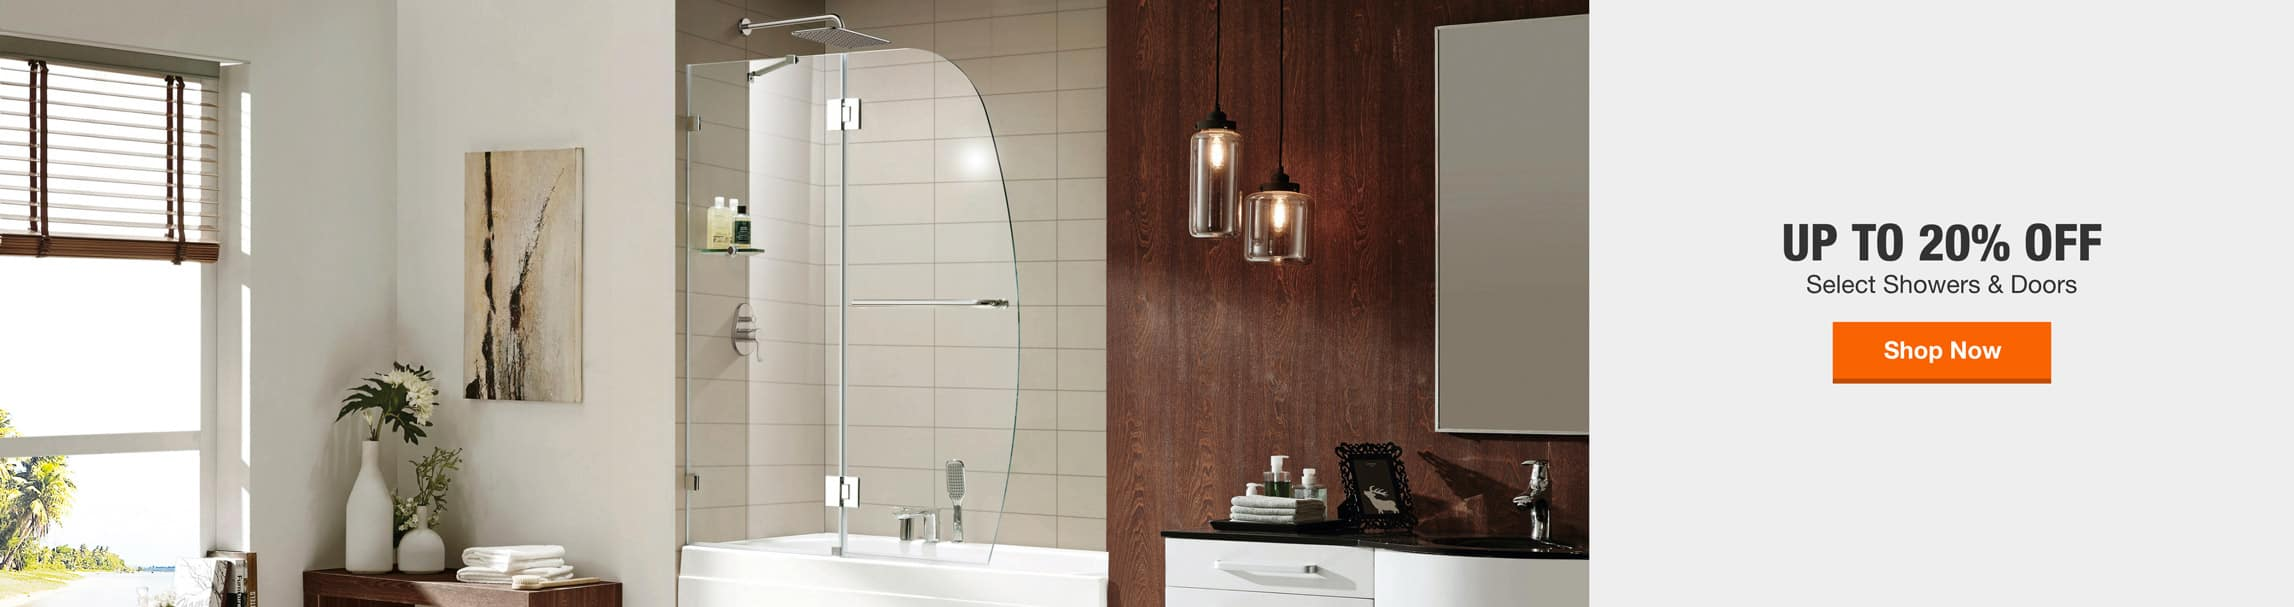 UP TO 20% OFF Select Showers & Doors